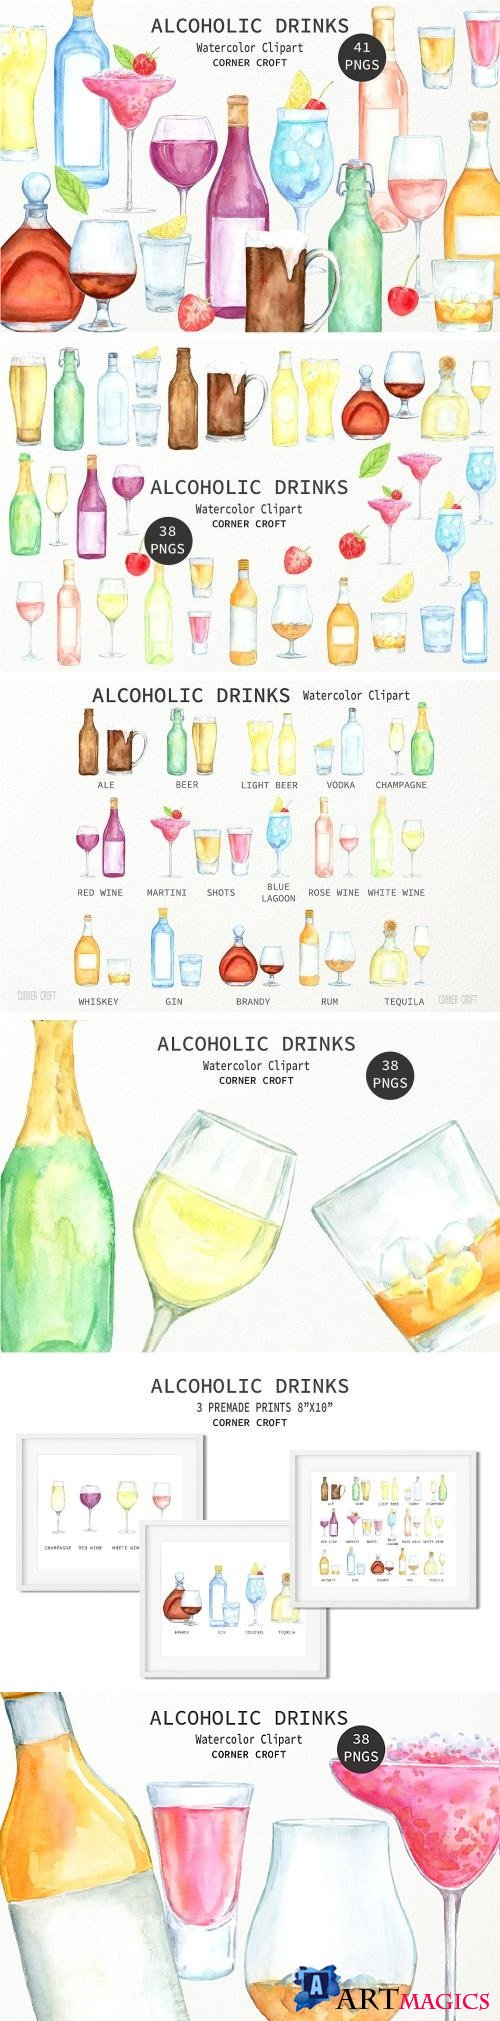 Watercolor Alcoholic Drinks Illustration - 2261398